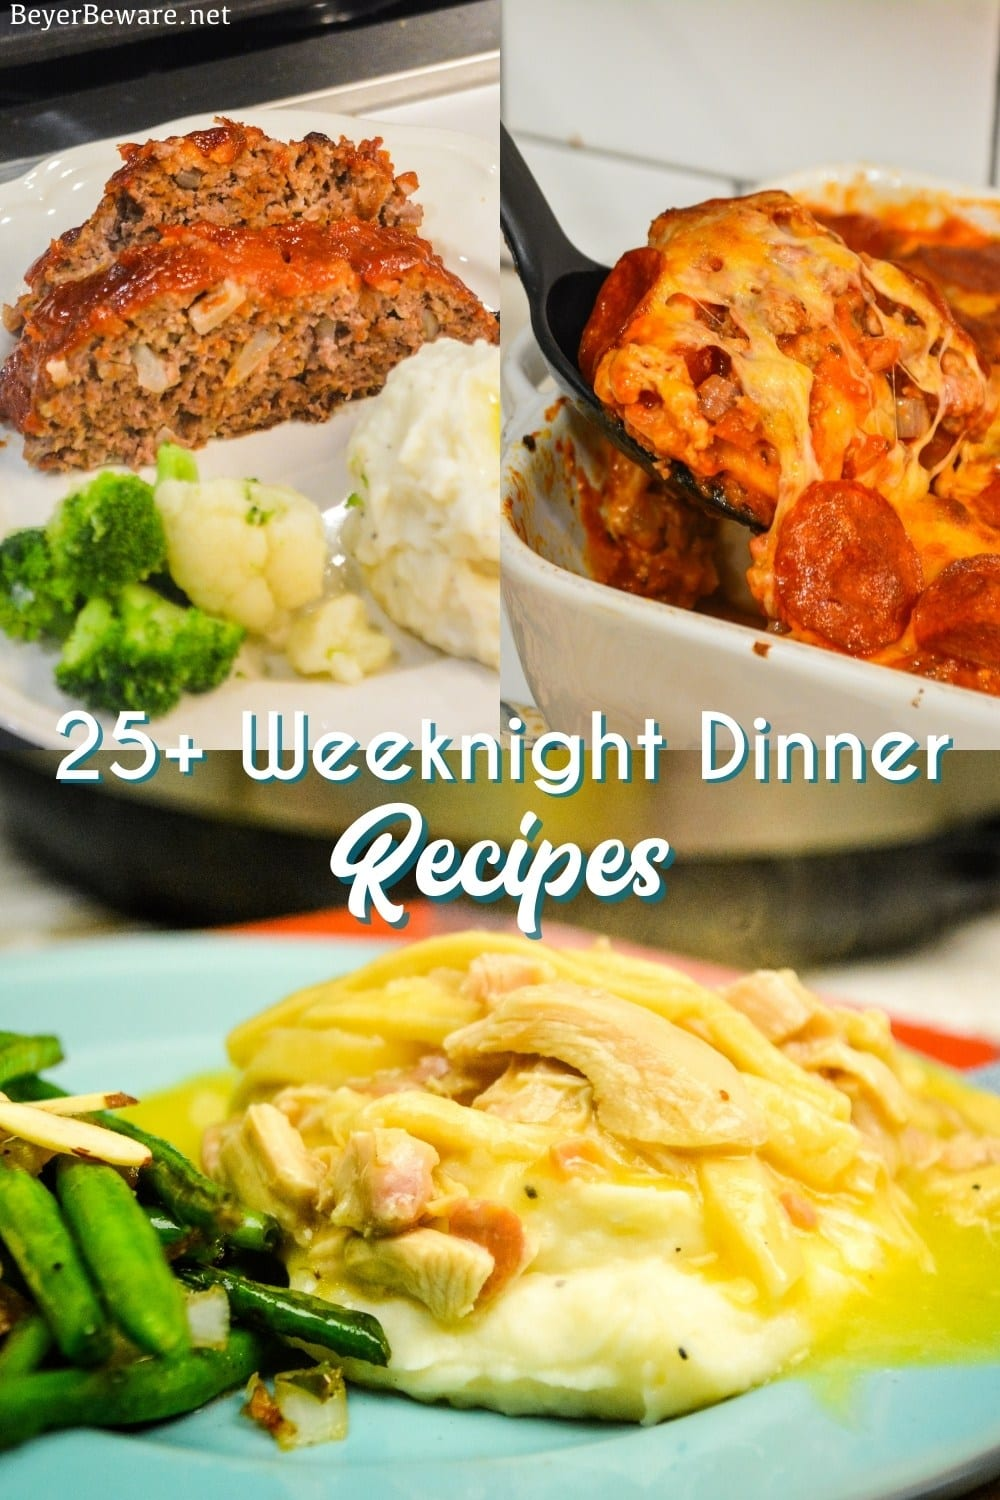 These 25+ quick and easy weeknight dinner recipes are staples during the week with cheesy Sausage Bagel recipe is one of my favorites.